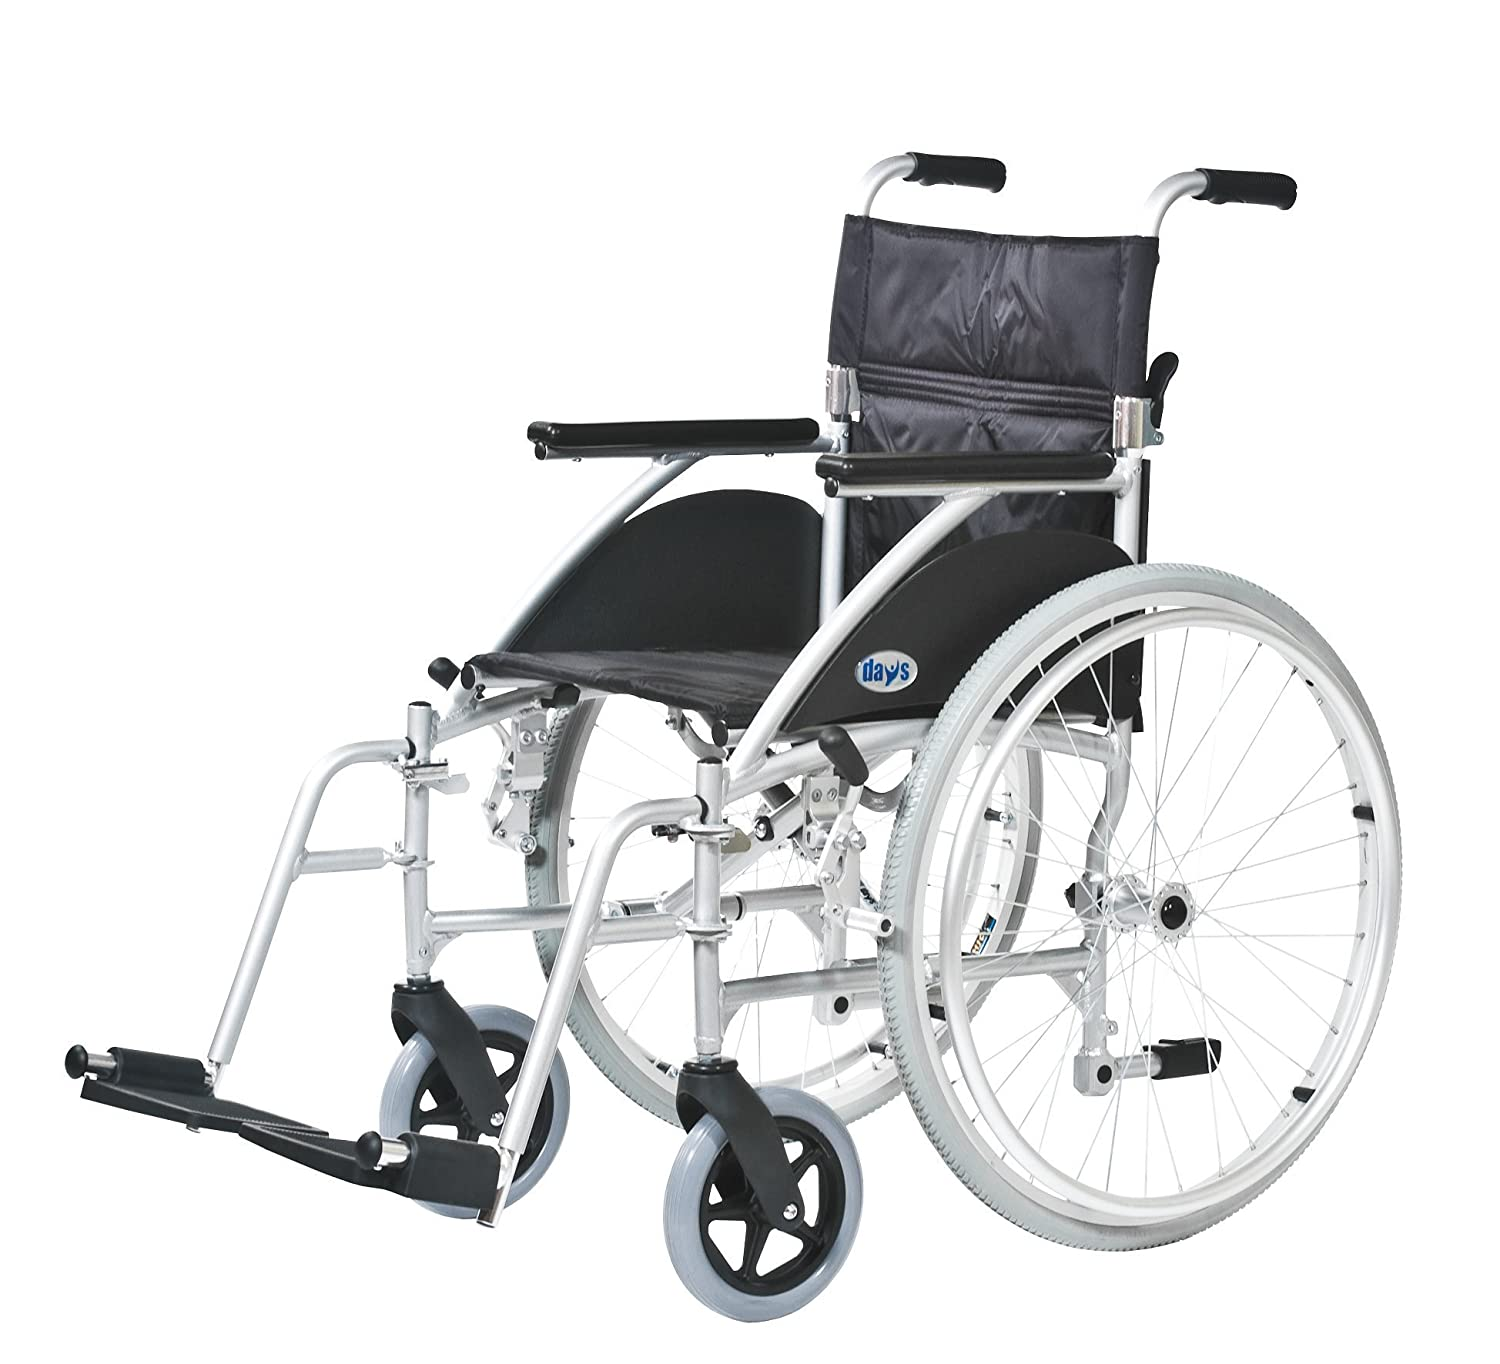 Swift Self-Propelled Wheelchair